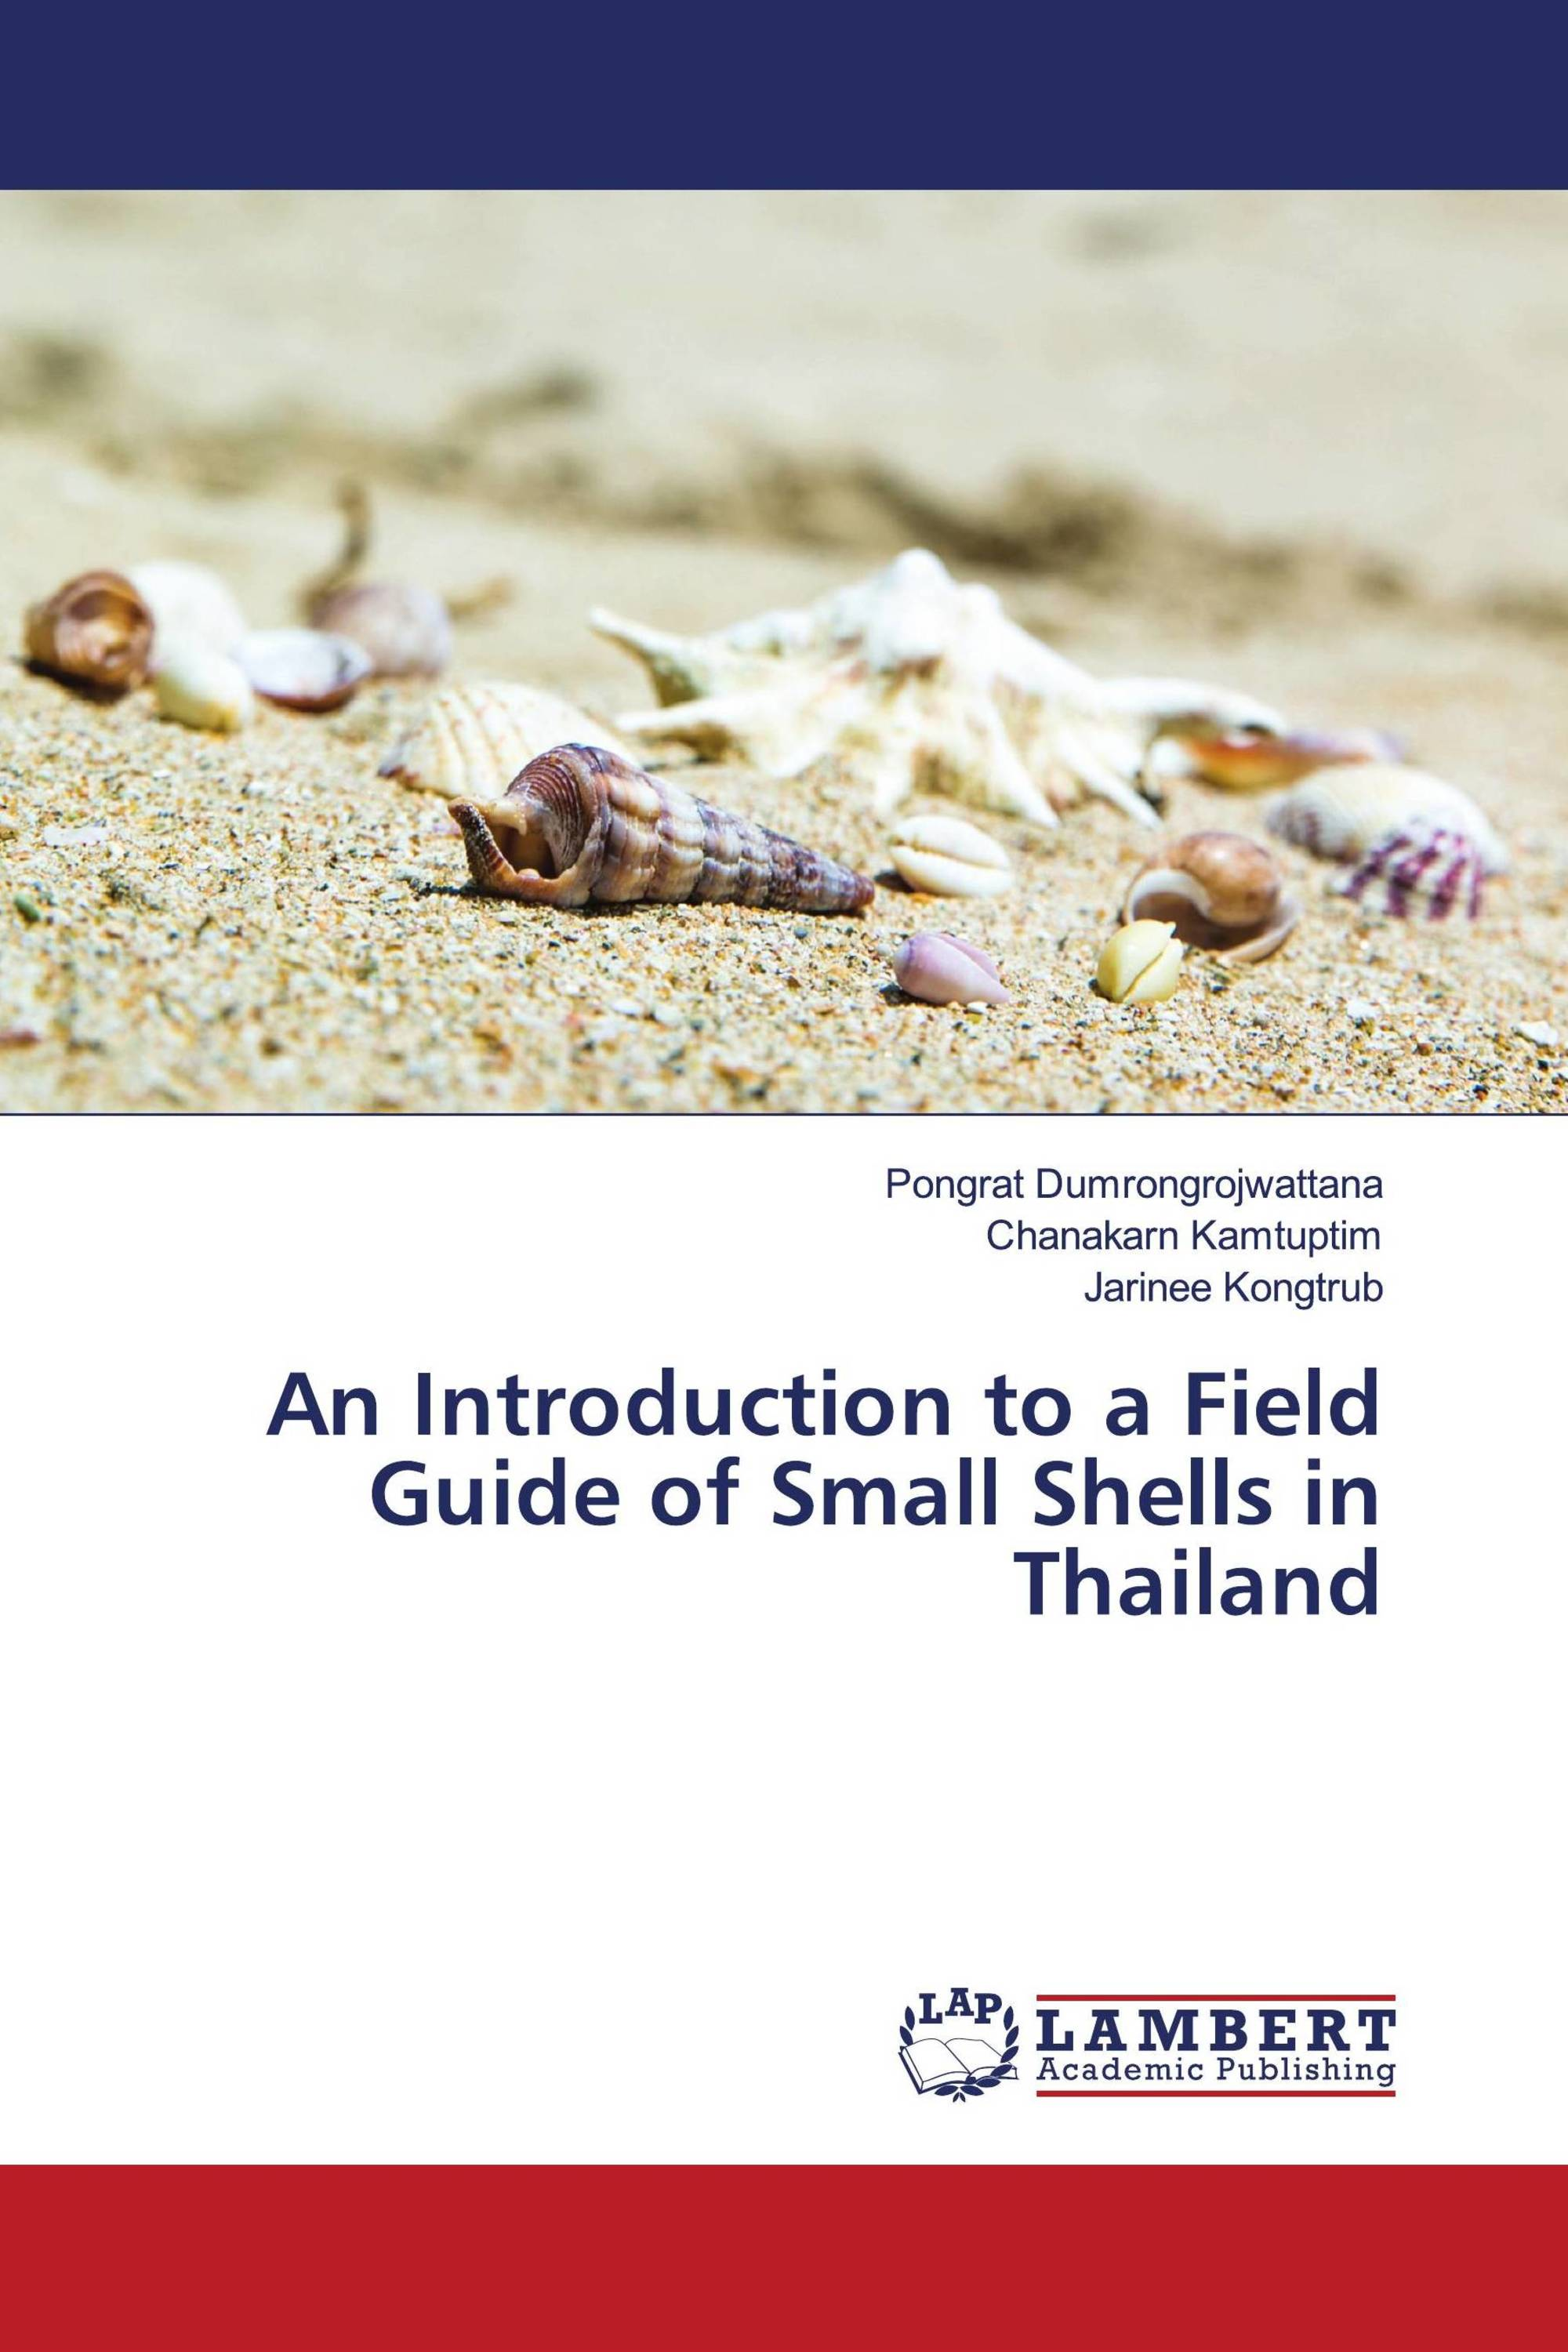 An Introduction to a Field Guide of Small Shells in Thailand